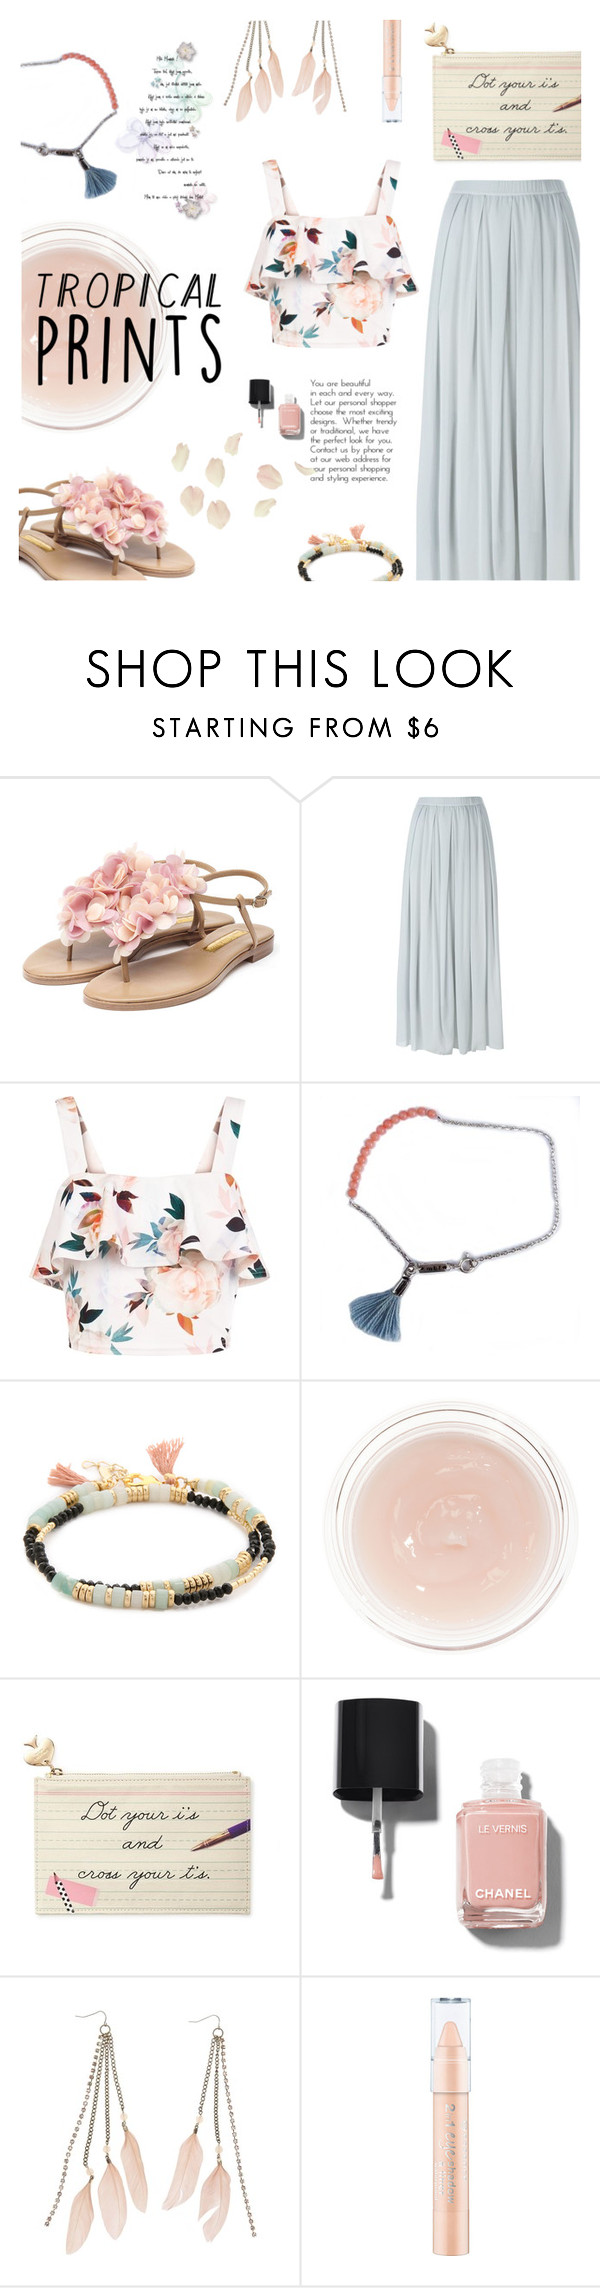 """Untitled #570"" by millilolly ❤ liked on Polyvore featuring Rupert Sanderson, KristenseN du Nord, New Look, Lennebelle, Shashi, Charlotte Tilbury, Kate Spade, Chanel, Charlotte Russe and tropicalprints"